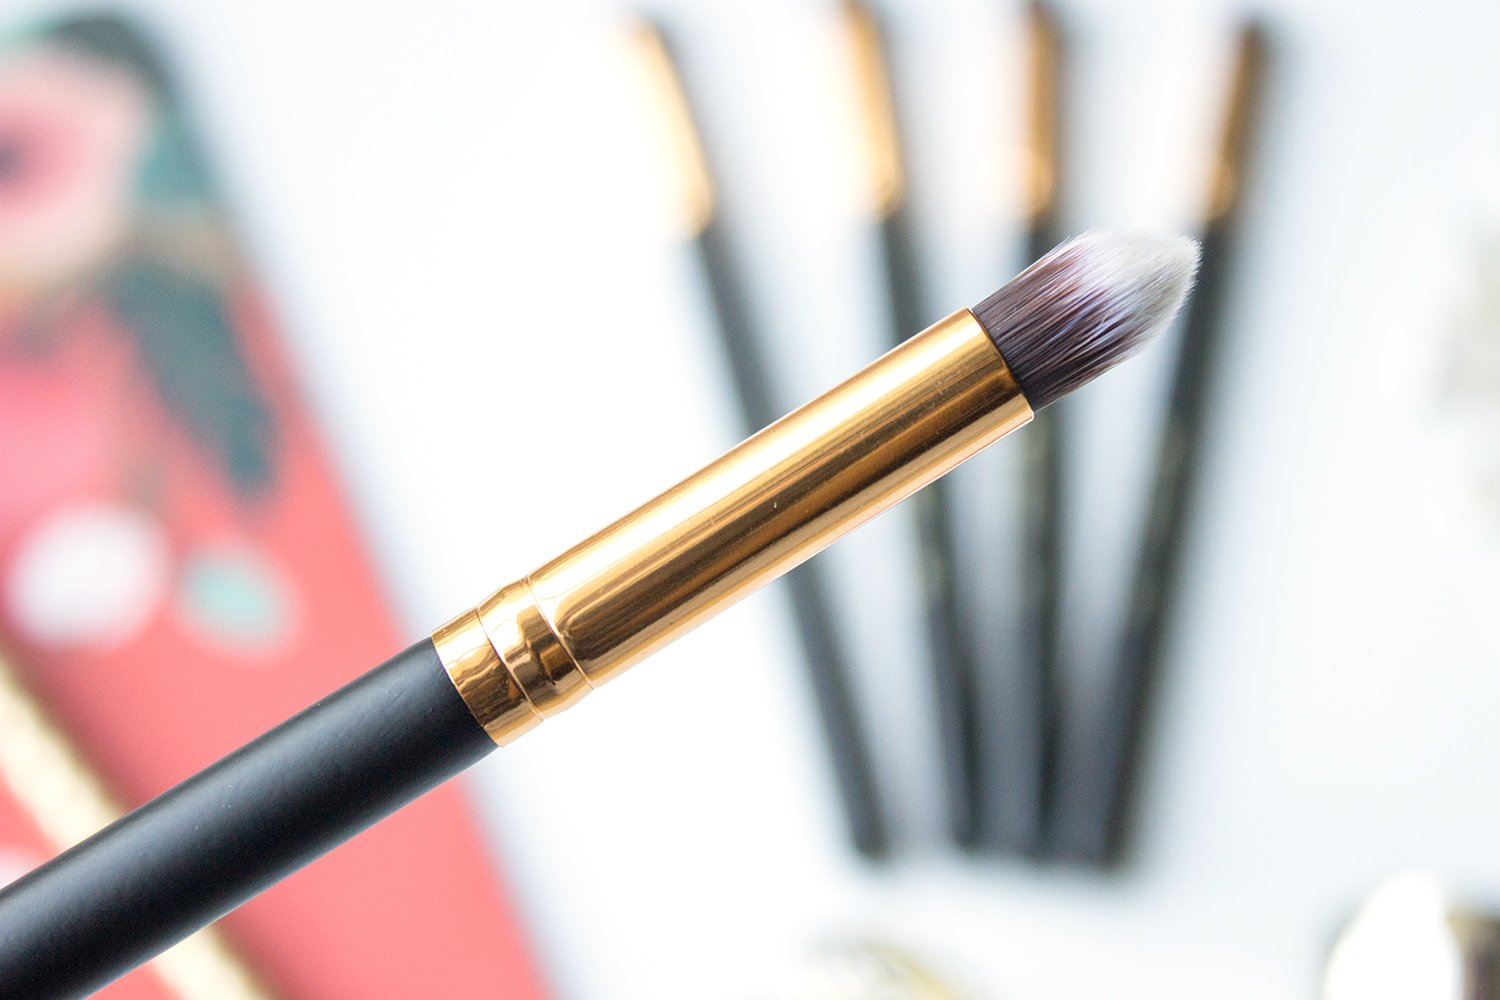 5c9d63a55c8a0 118 Small Tapered Contouring Face Brush. The super fine tip on this brush  makes it great for anywhere you want very precise application of a product.